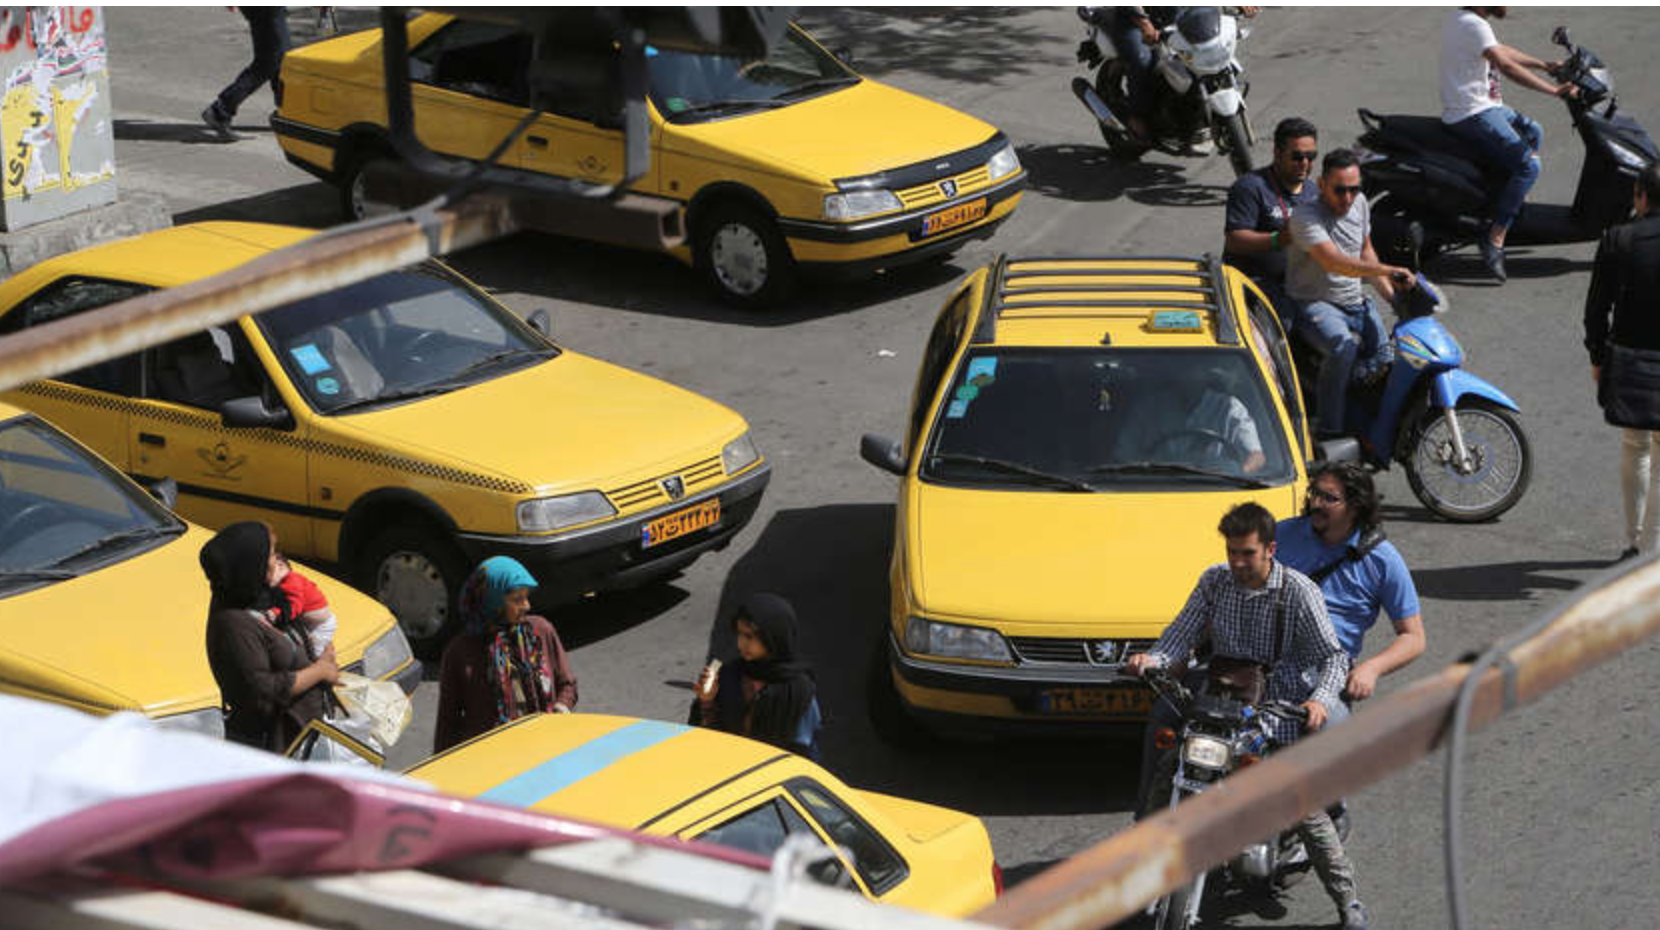 Iranian hard-liners praise taxi driver for booting passenger over 'poor' hijab